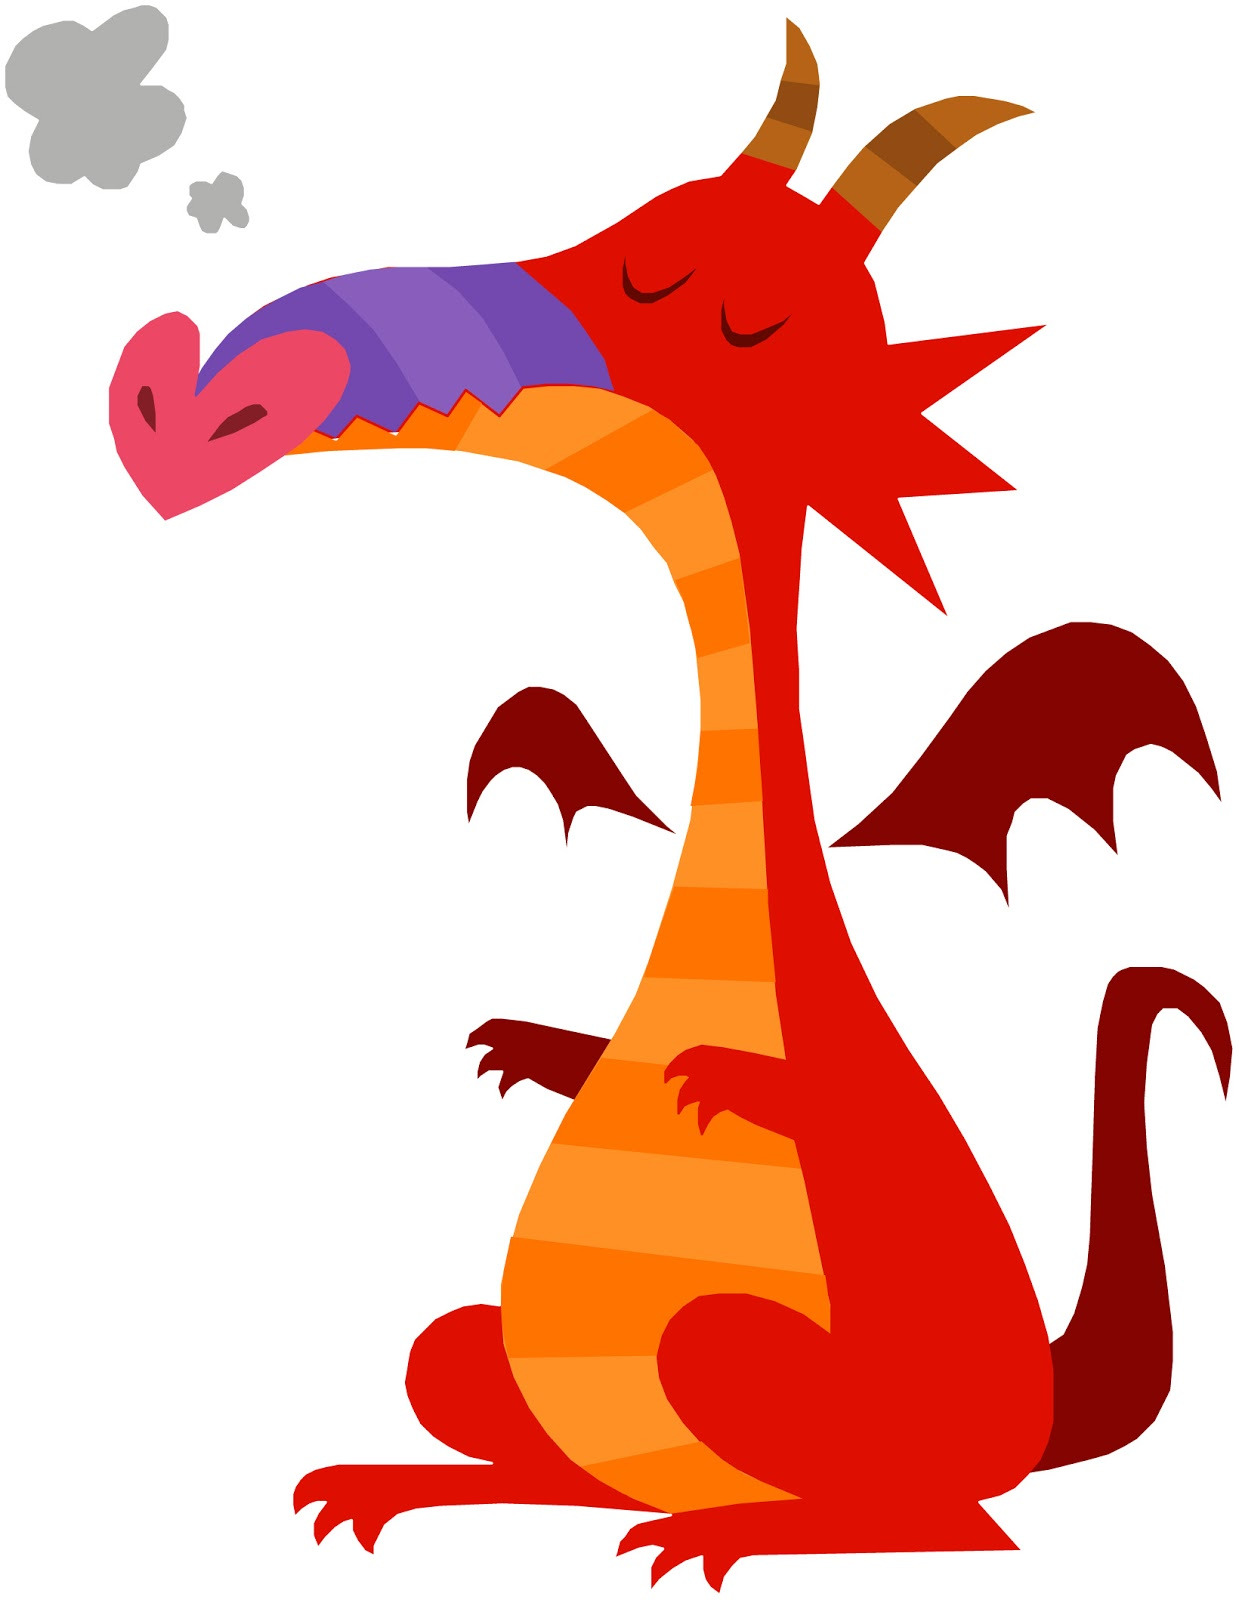 Clipart dragon childrens. Free images for children